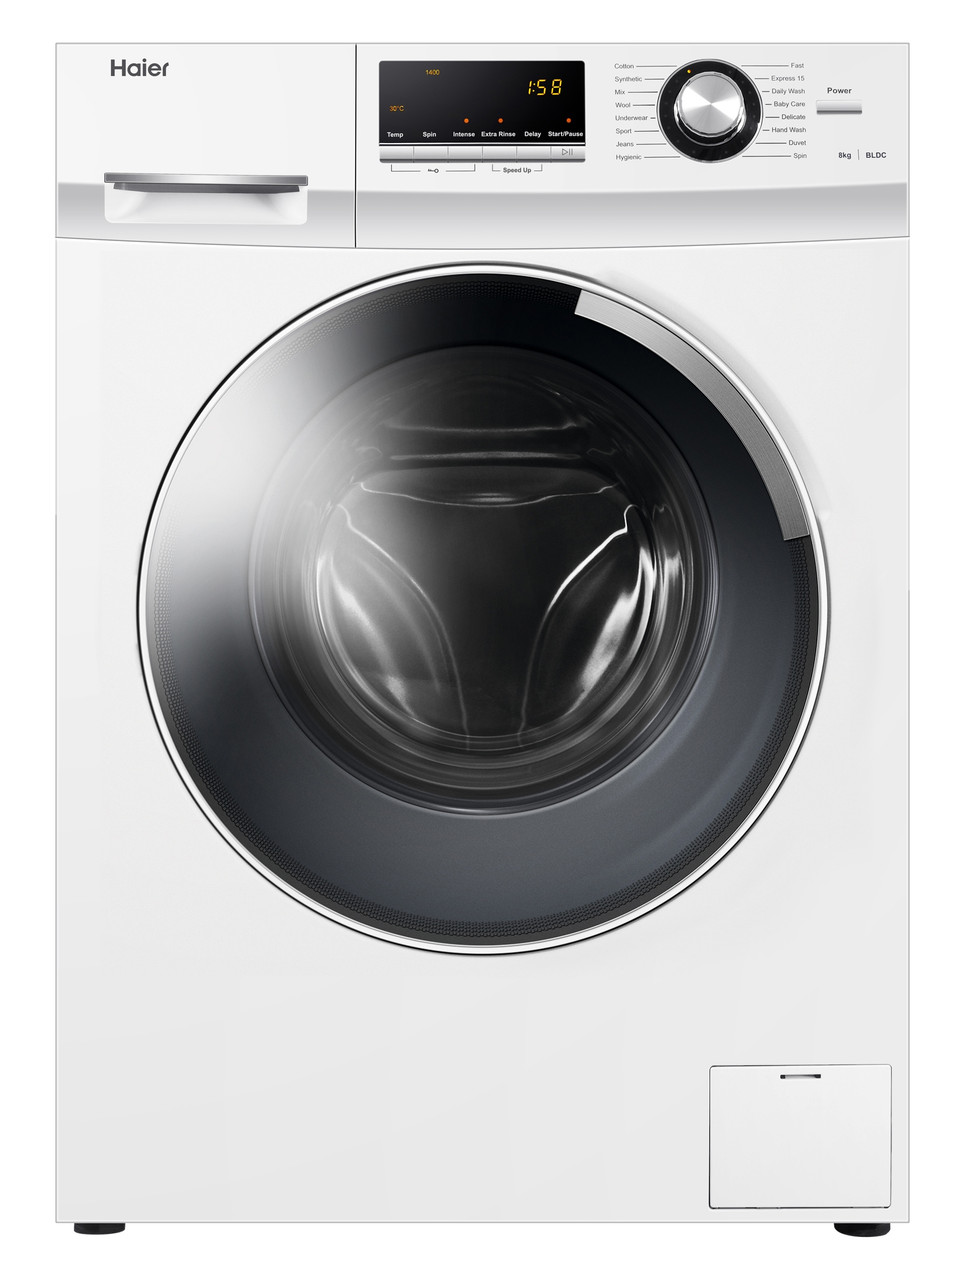 Haier 8kg Front Load Washing Machine Magness Benrow